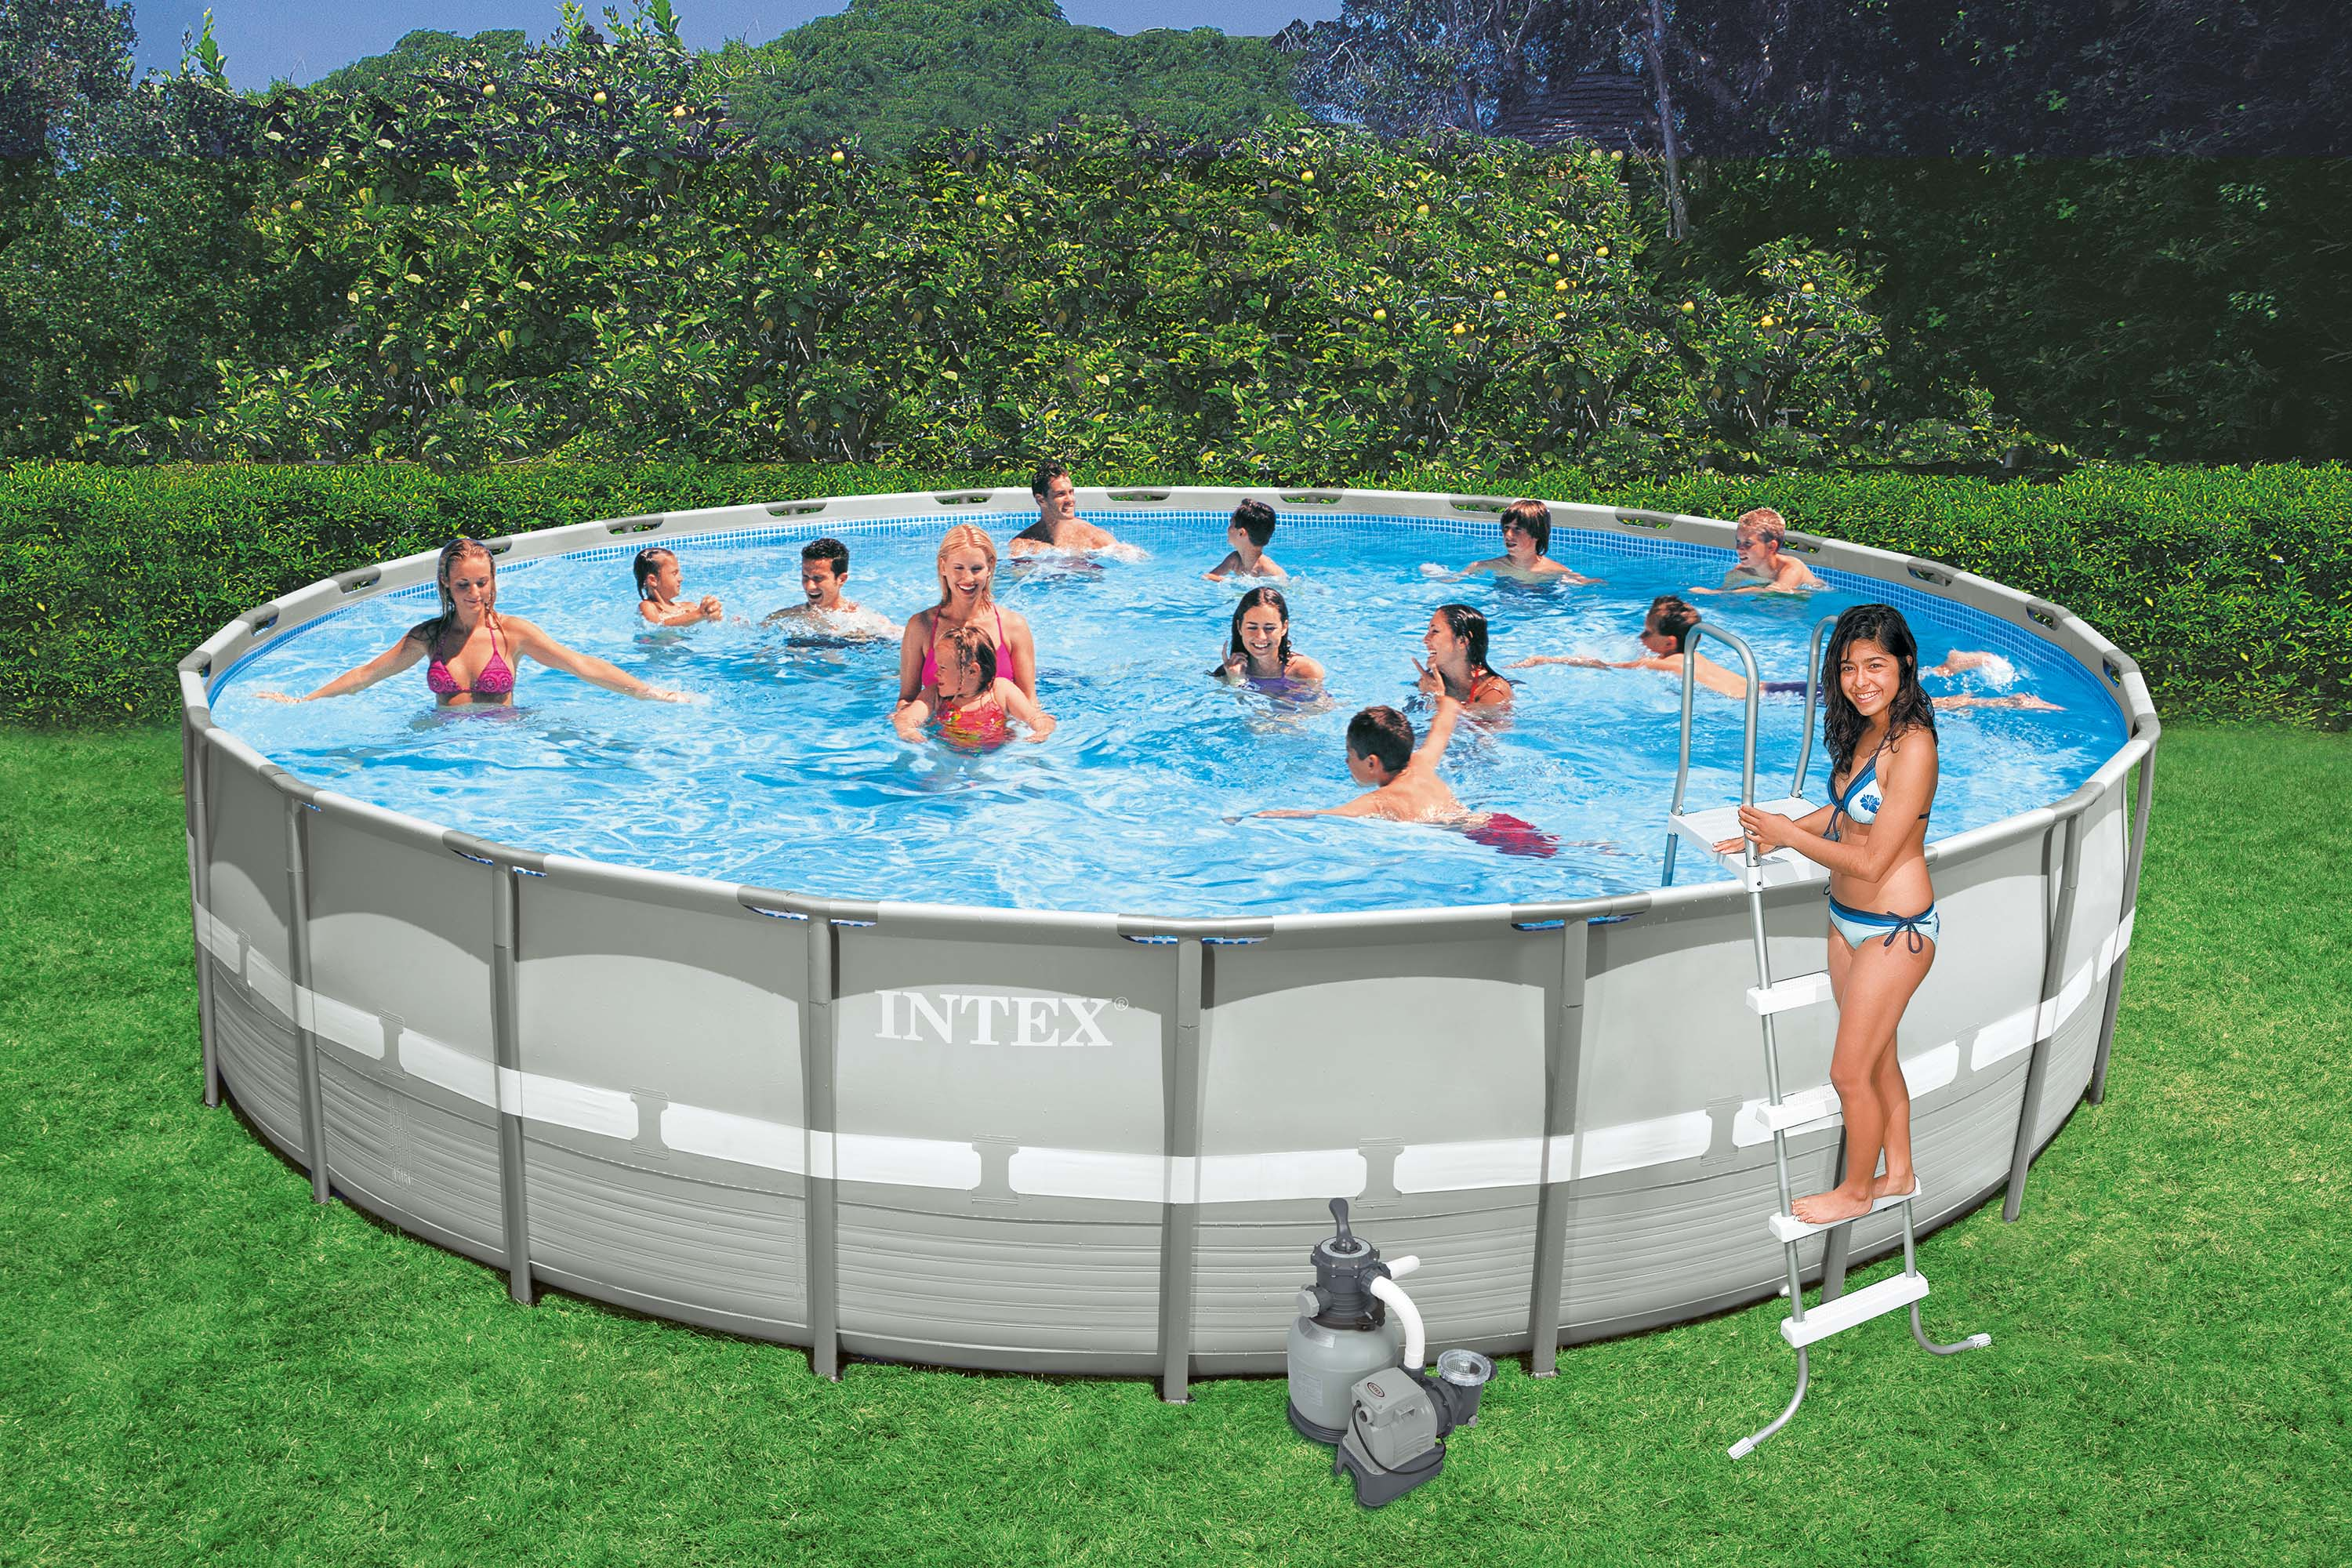 Pool Garten Pumpe Garten Pool Intex Gallery Of Der Intex Easy Set Pools Mit